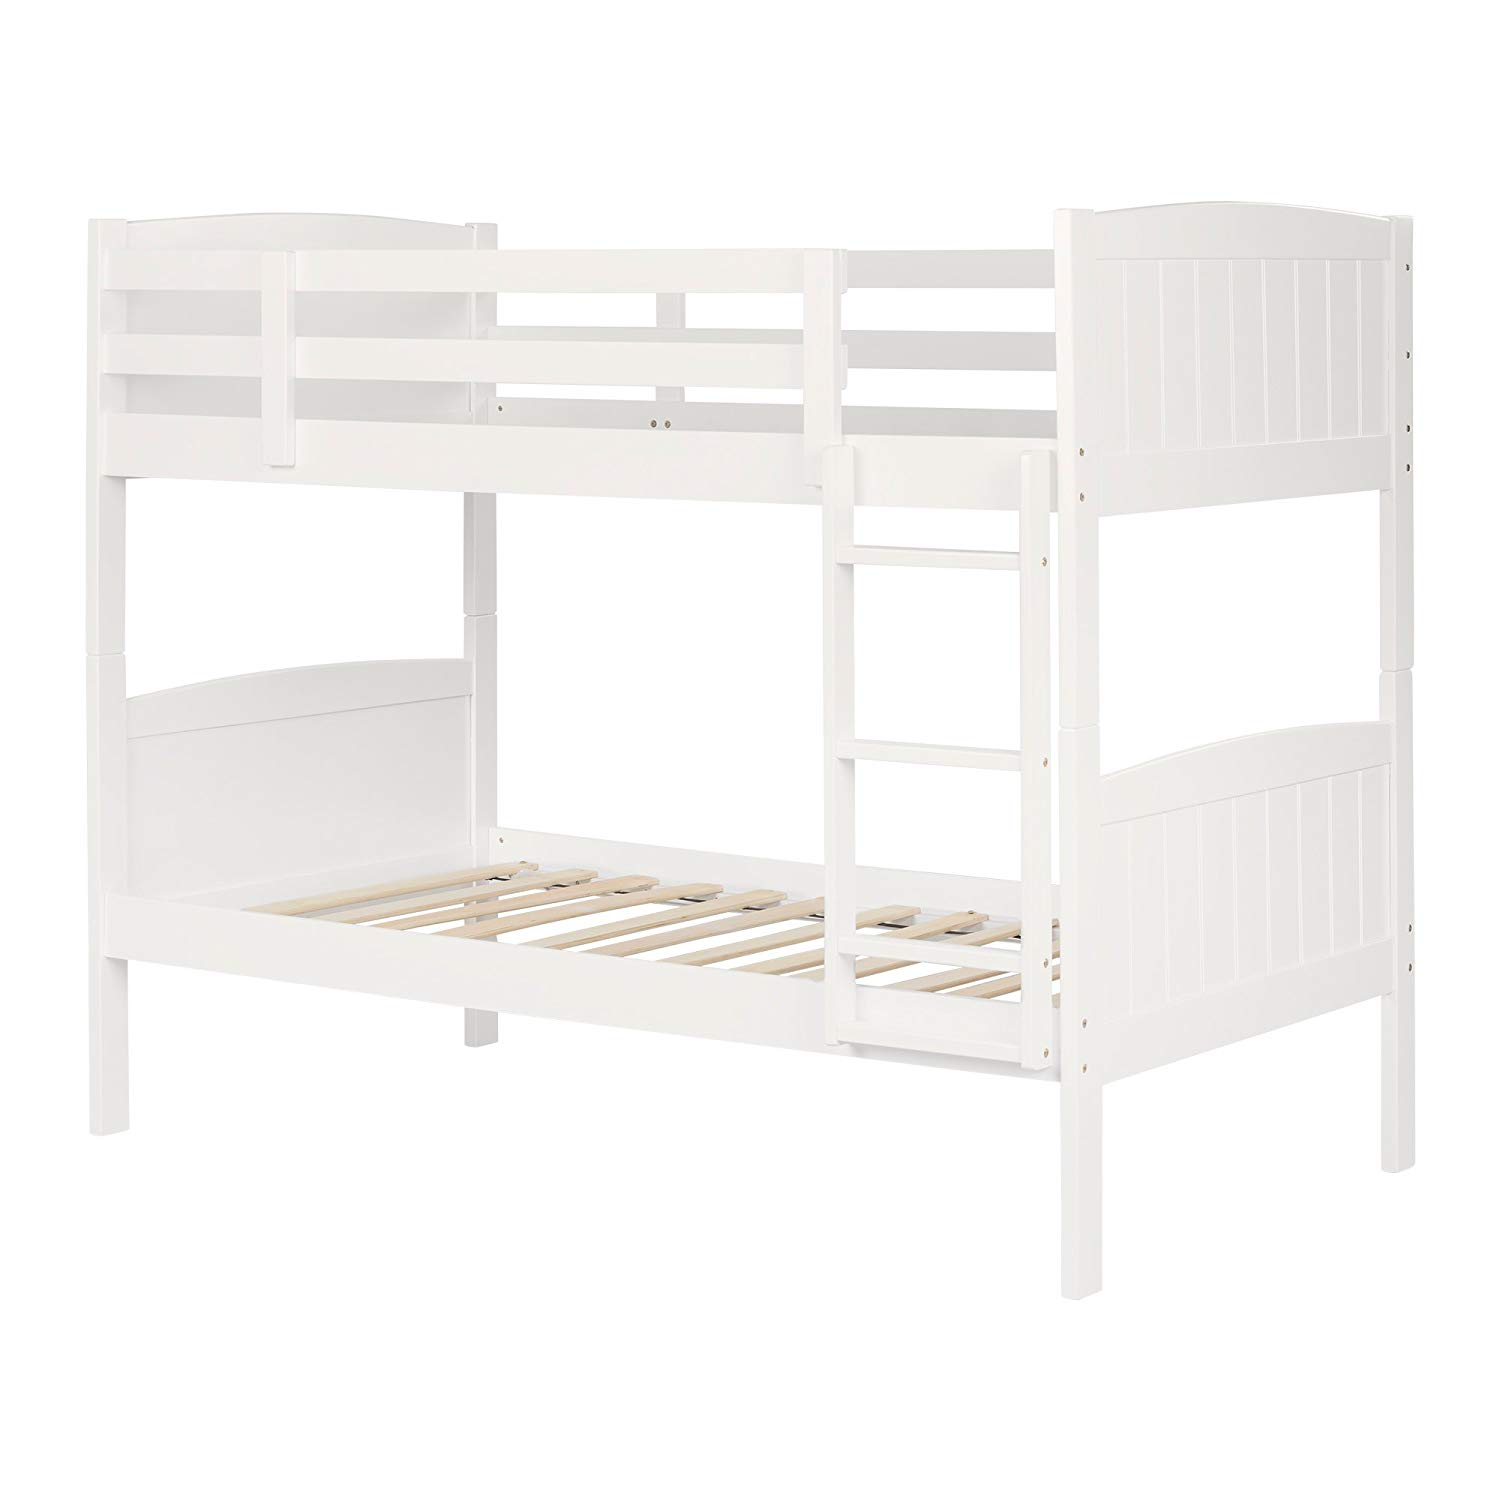 Cheap Solid Wood Cot Beds Find Solid Wood Cot Beds Deals On Line At